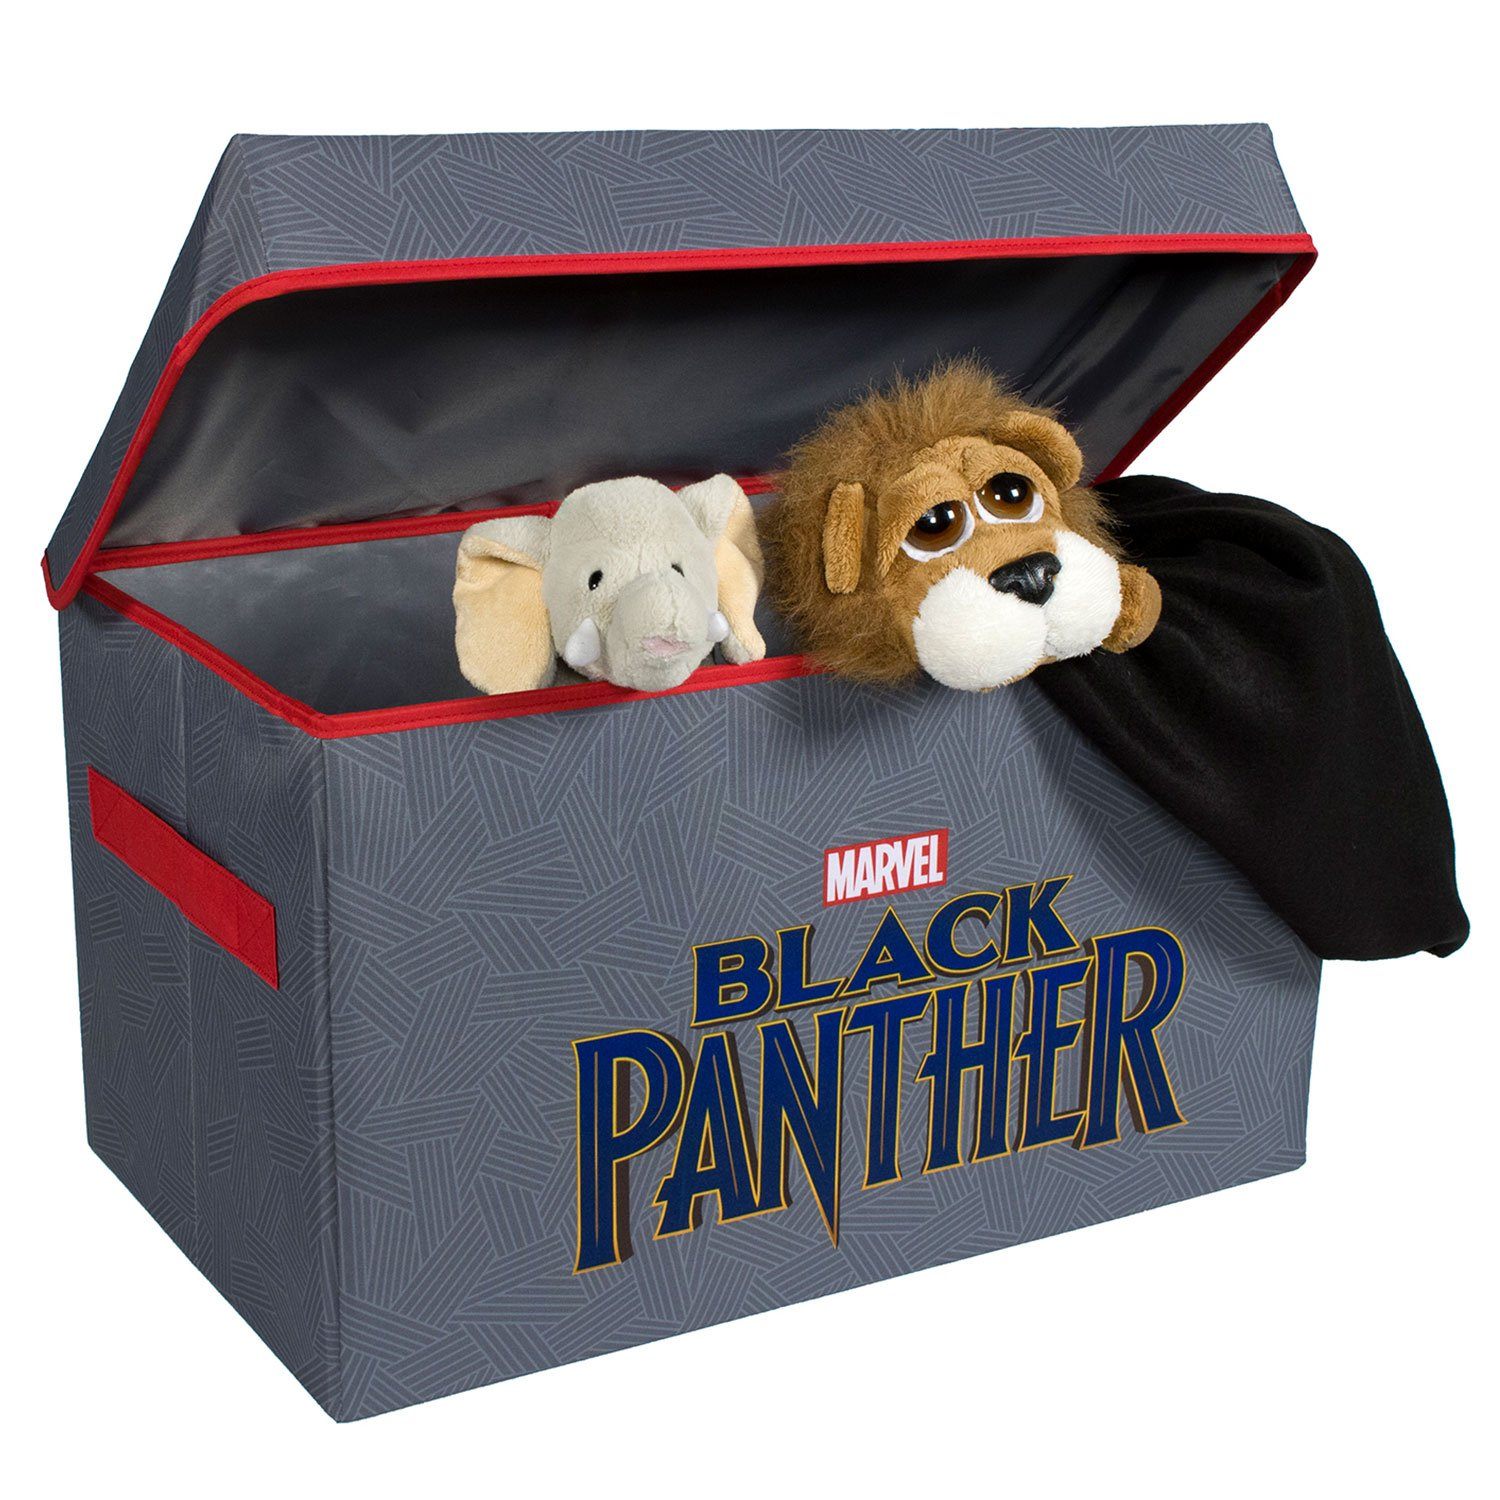 Black Panther Collapsible Kids Toy Storage Chest by Marvel - Flip-Top Toy Organizer Bin for Closets, Kids Bedroom, Boys & Girls Toys - Foldable Toy Basket Organizer with Strong Handles & Design